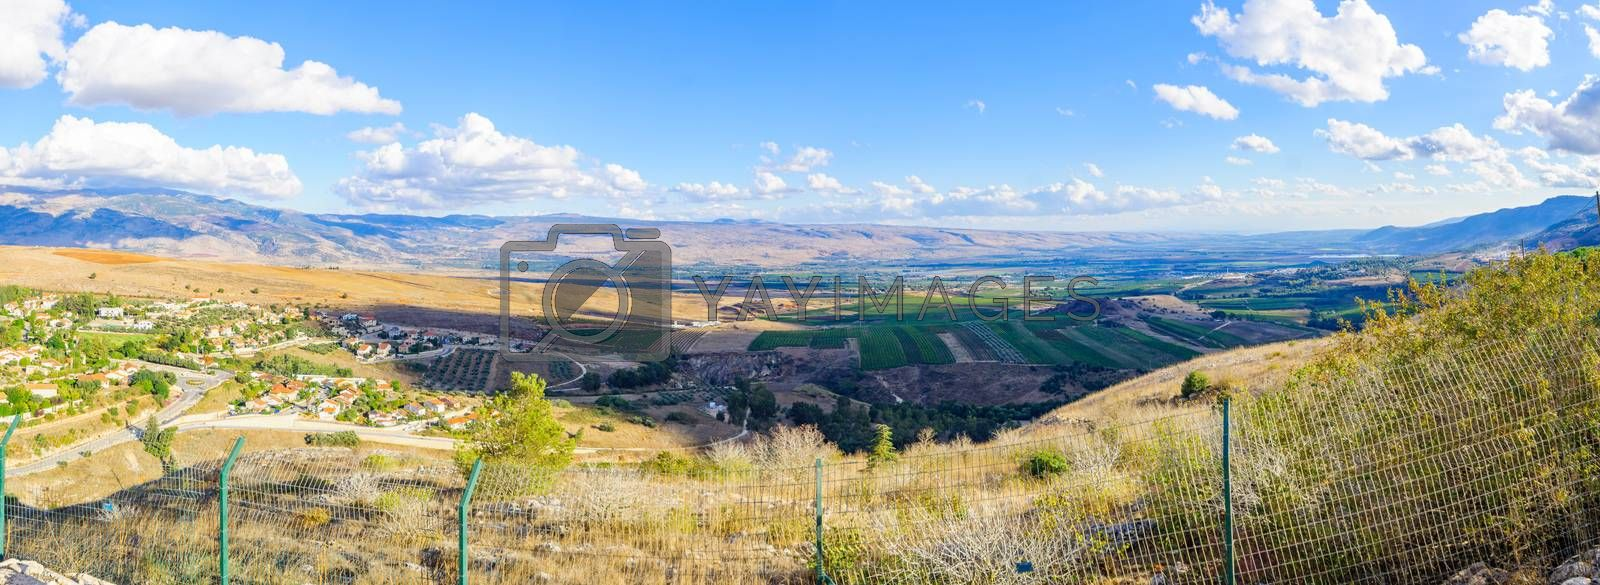 Panoramic view of the town of Metula, and nearby landscape, Norther Israel, at the border with Lebanon